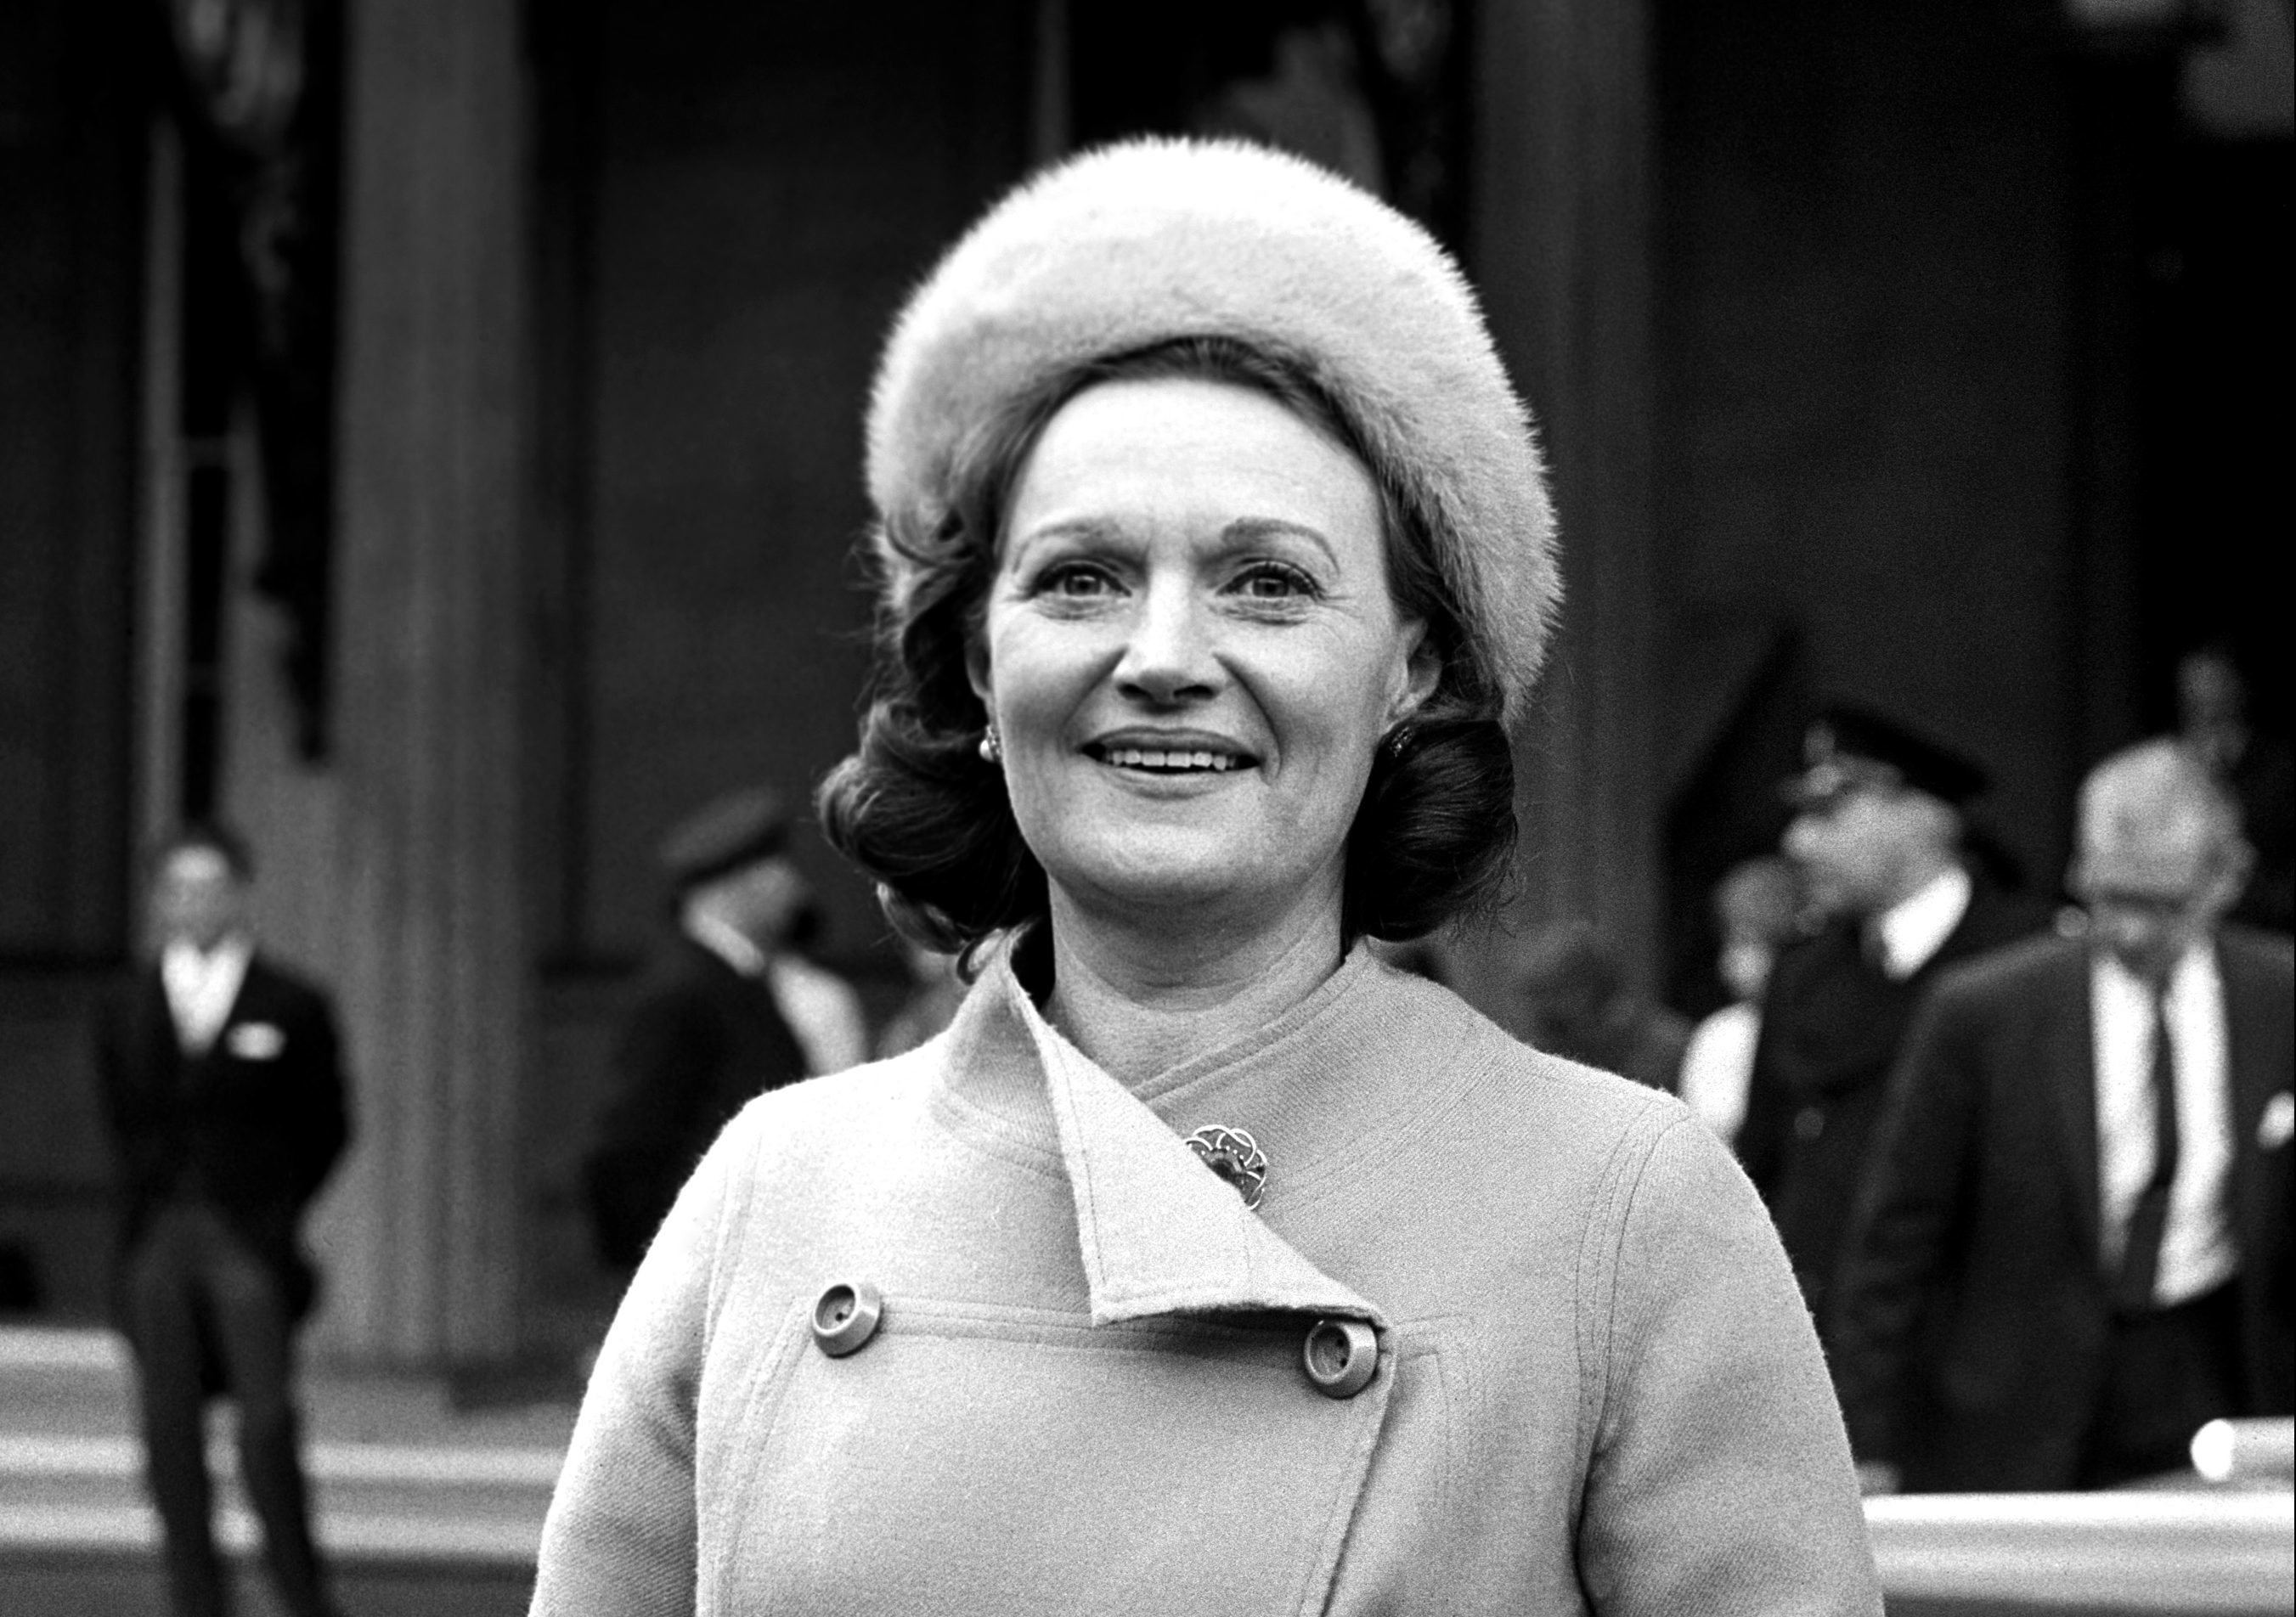 Mrs Muriel Spark after she had received the OBE from the Queen (PA)